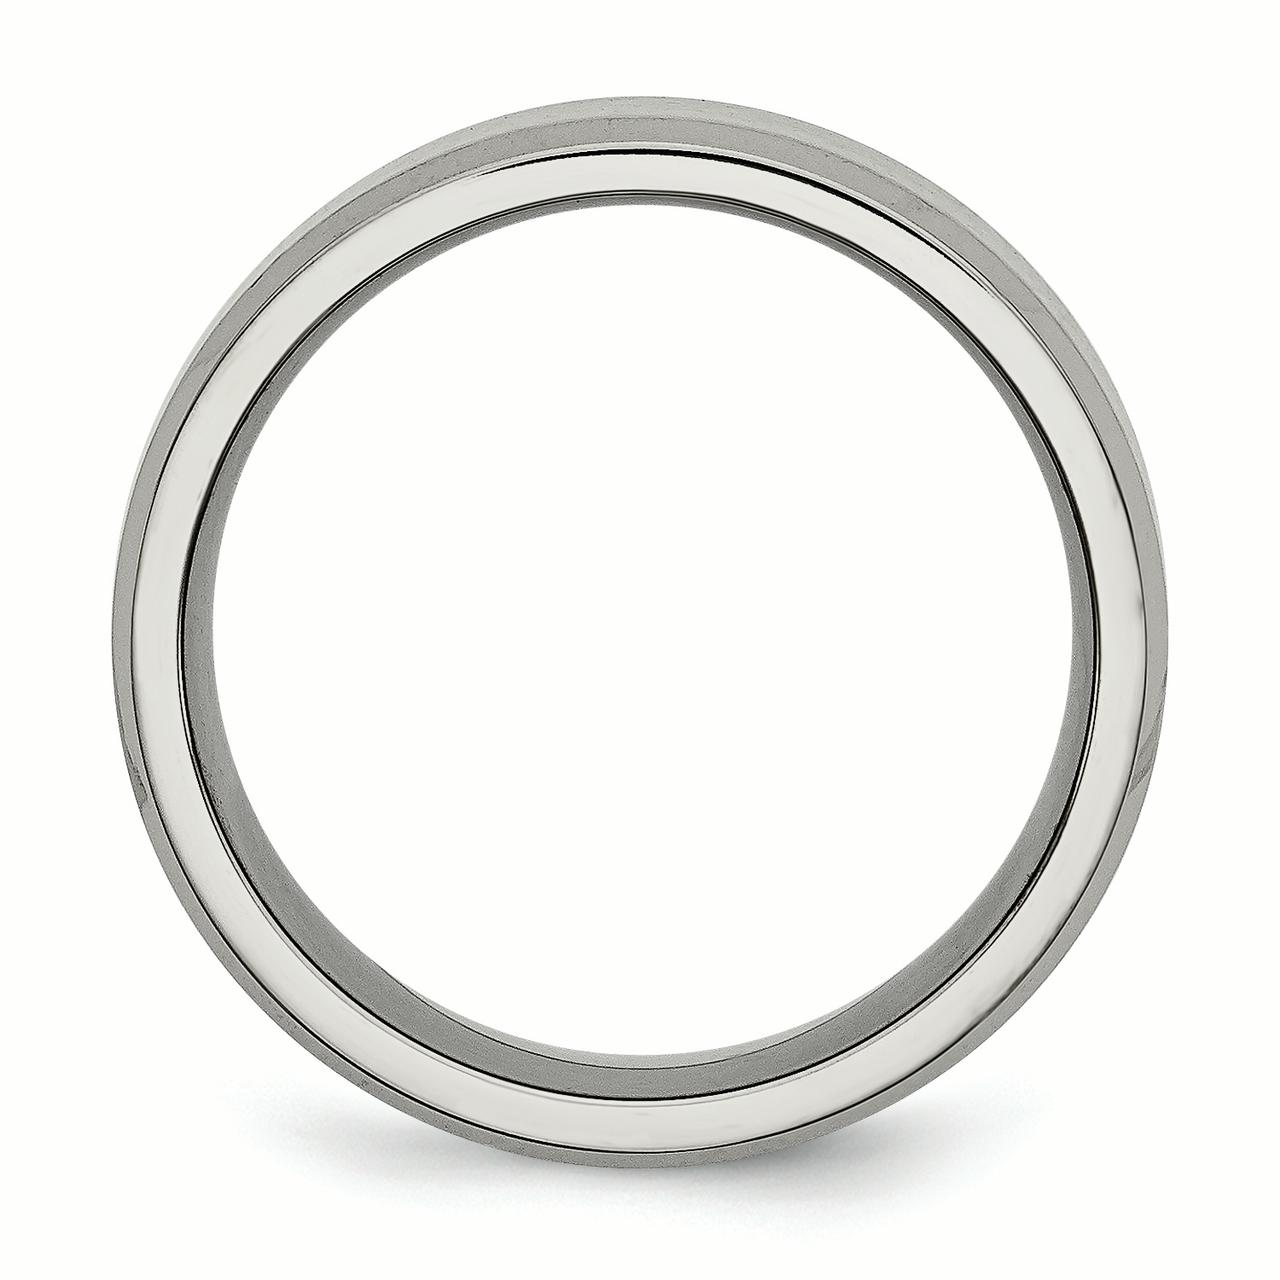 Titanium Beveled Edge 8mm Brushed Wedding Ring Band Size 12.00 Classic Flat W/edge Fashion Jewelry Gifts For Women For Her - image 4 of 6